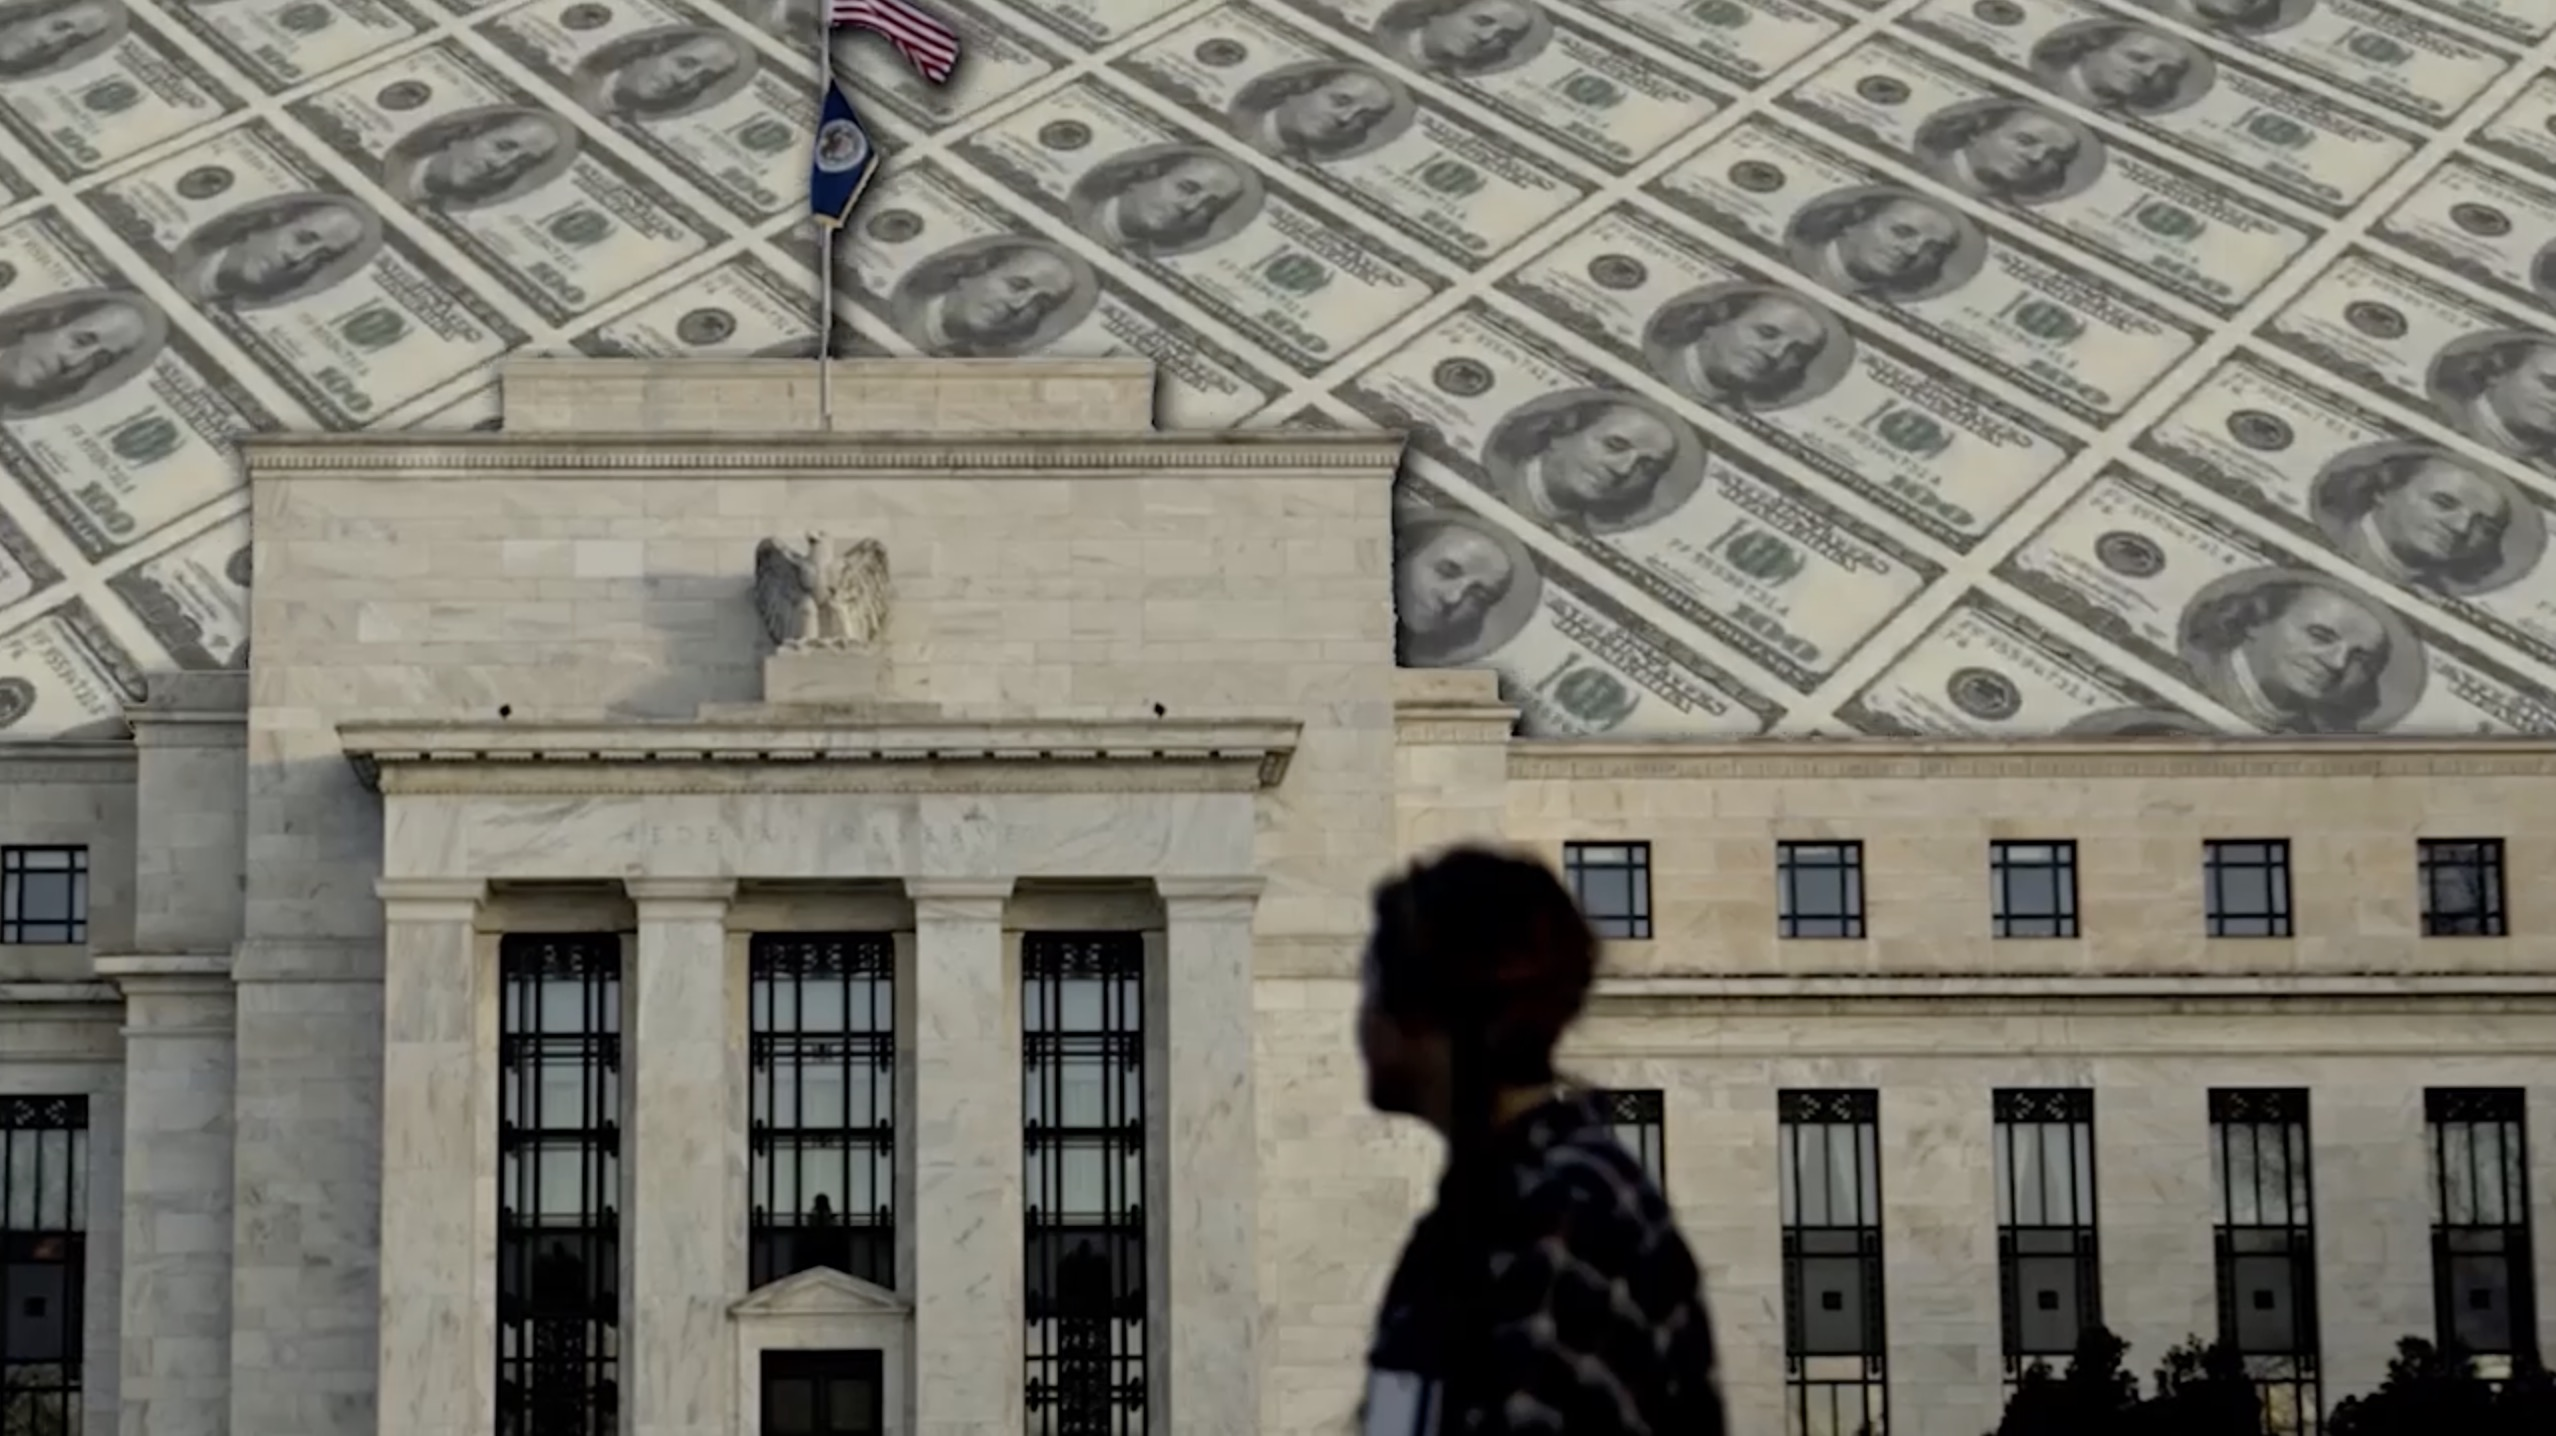 The Greening Out Podcast chats to James Corbett about his new documentary Century of Enslavement: A History of The Federal Reserve.